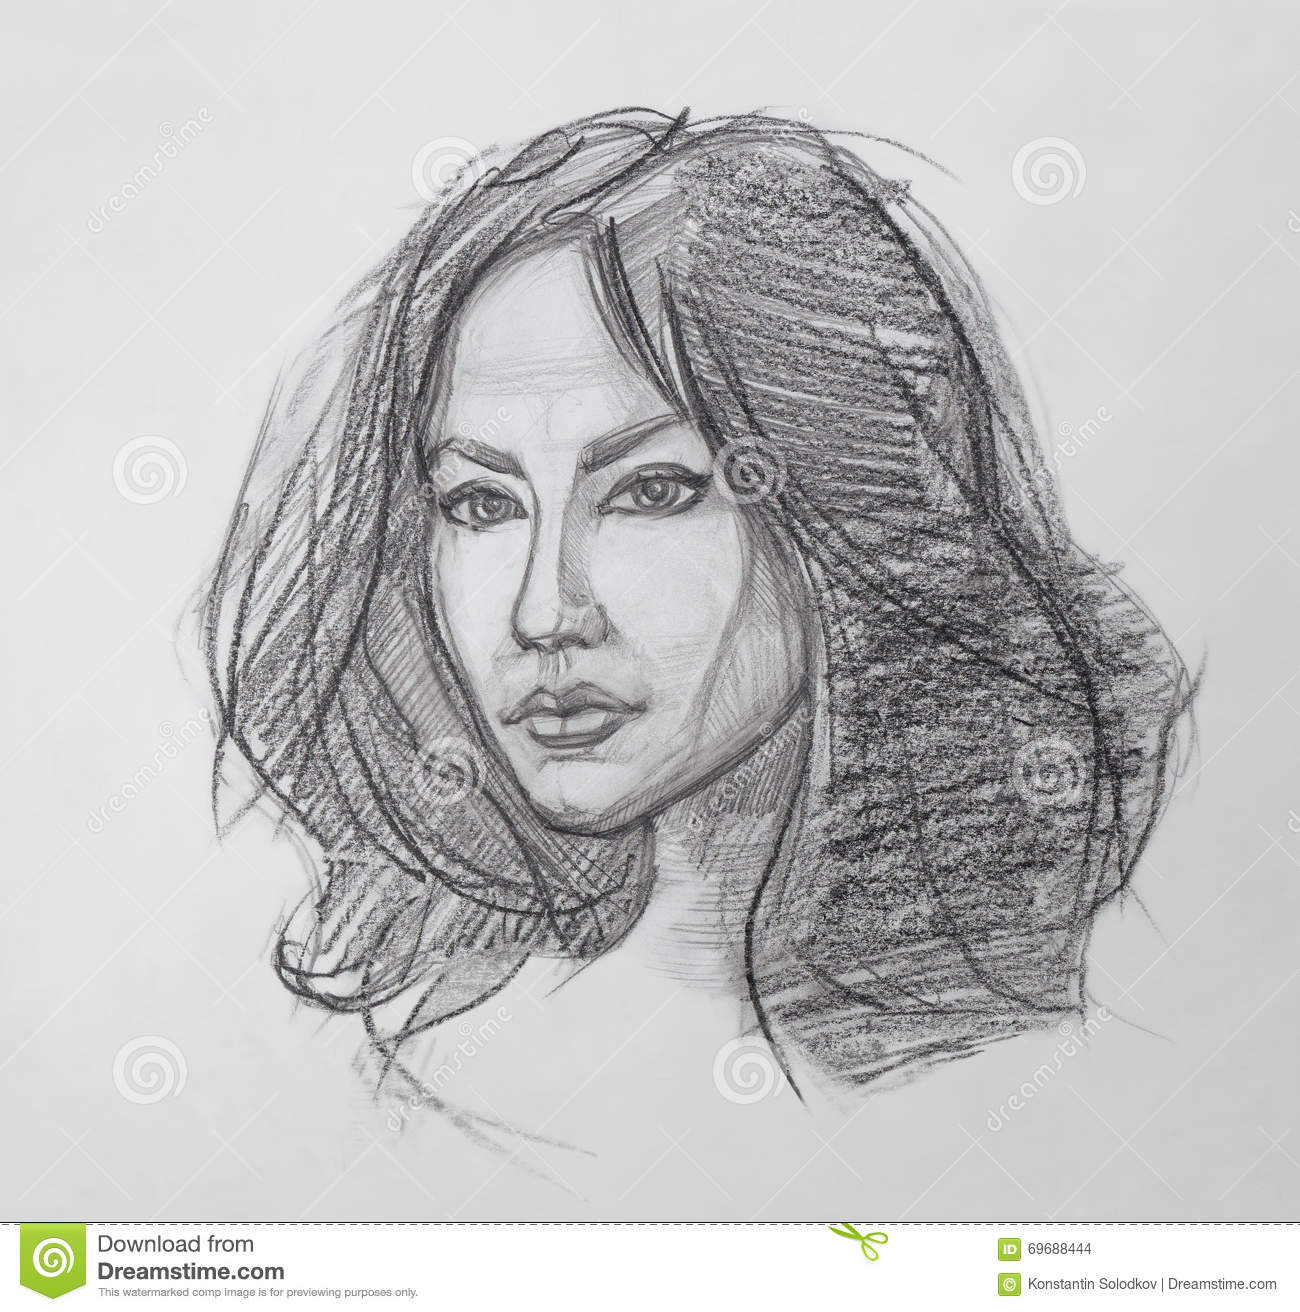 The fine art portrait of the young woman female face human head sketch hand drawing it is a pencil drawing